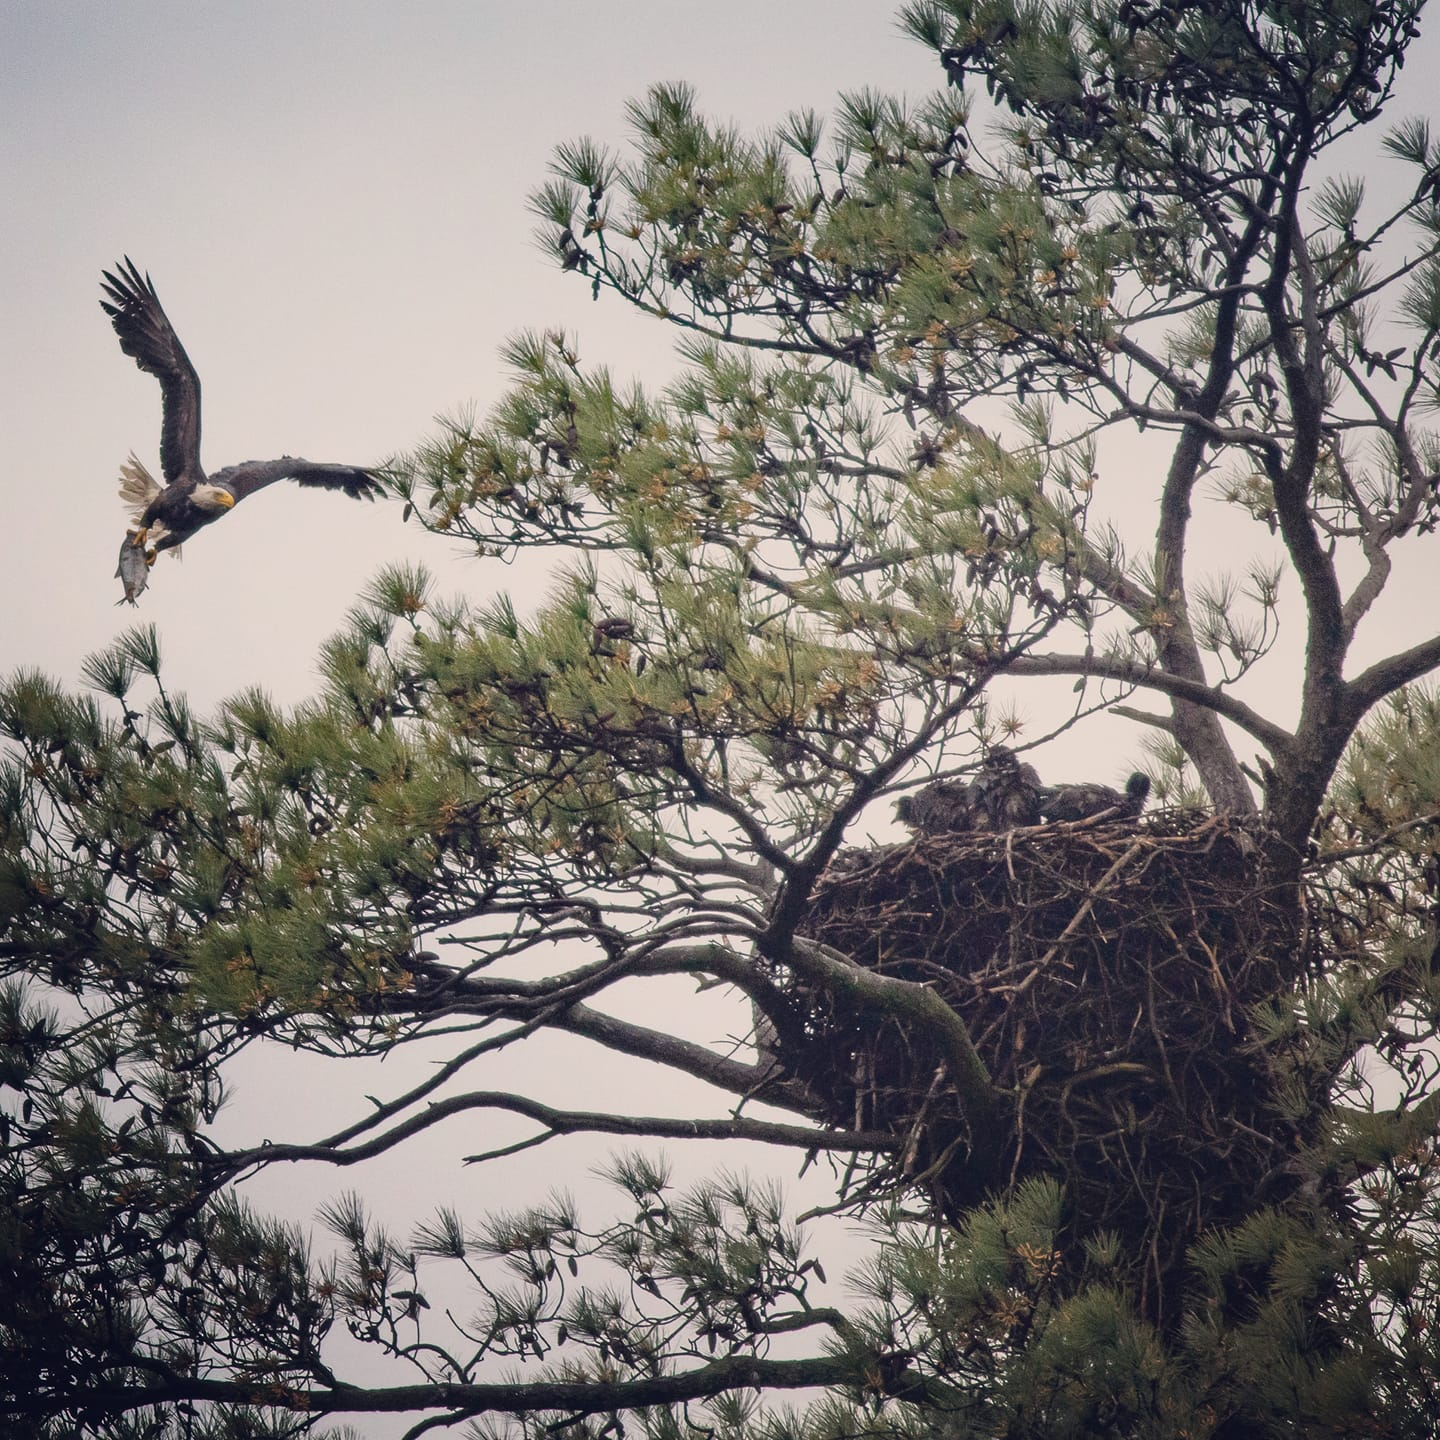 Tree with an Eagles nest in branches. Nest has three Eaglets in it. In the corner, adult Bald Eagle swooping in with a fish in its talons.